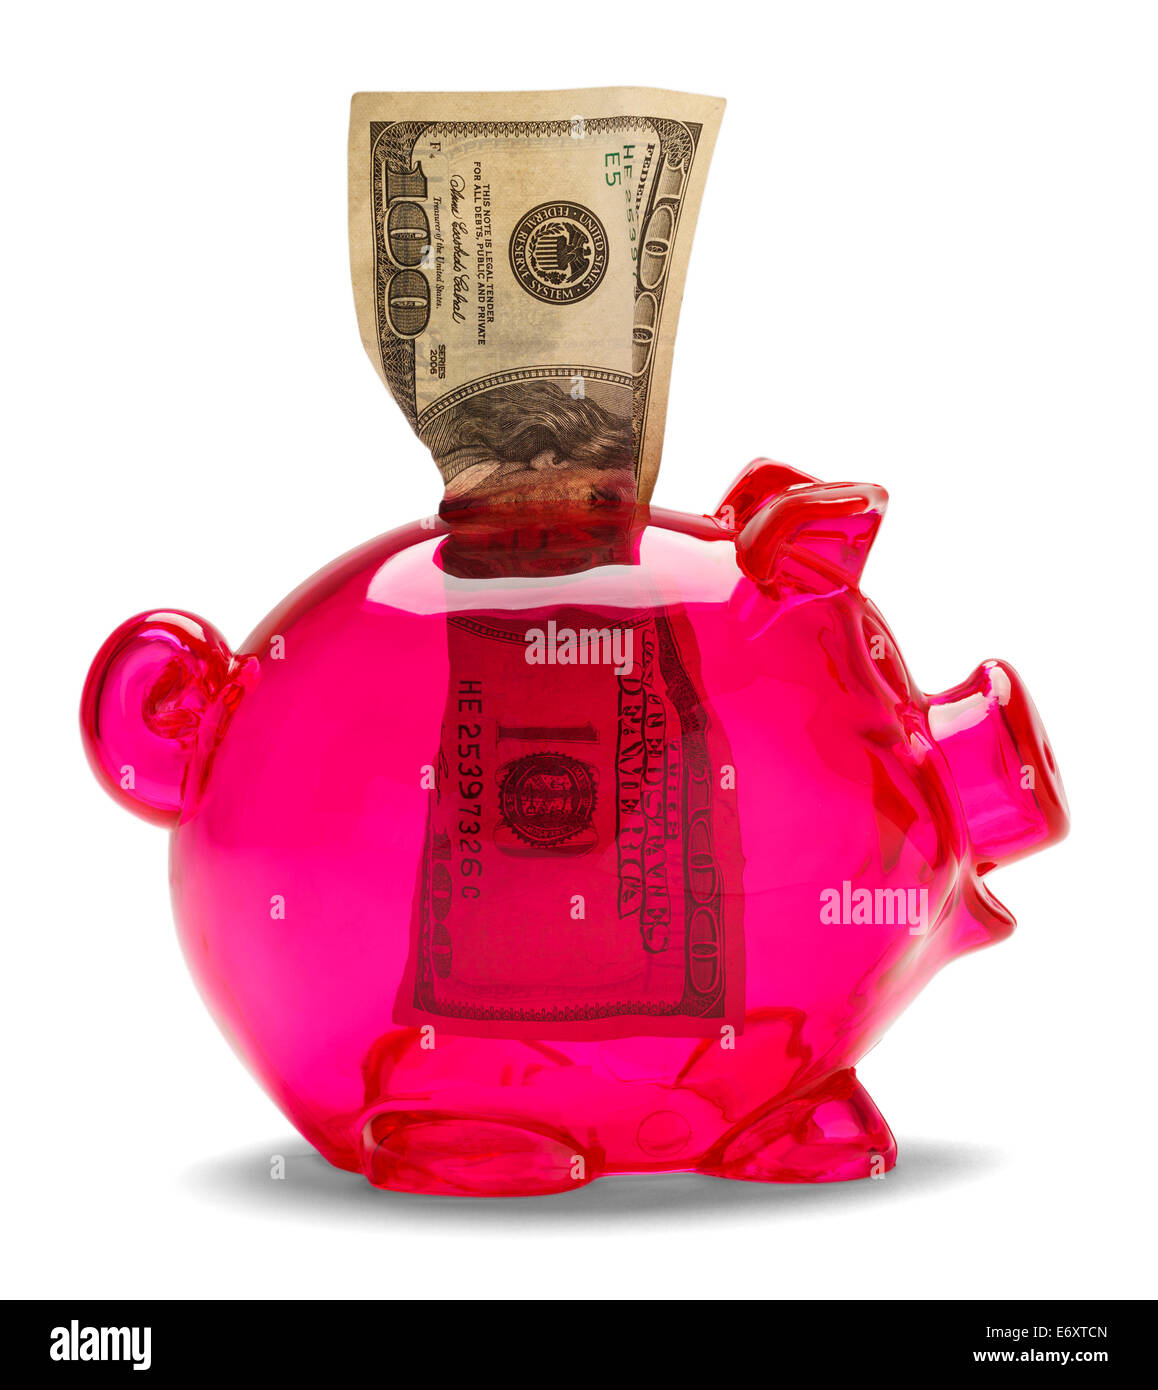 See through piggy bank with one hundred dollar bill isolated on a white background. - Stock Image